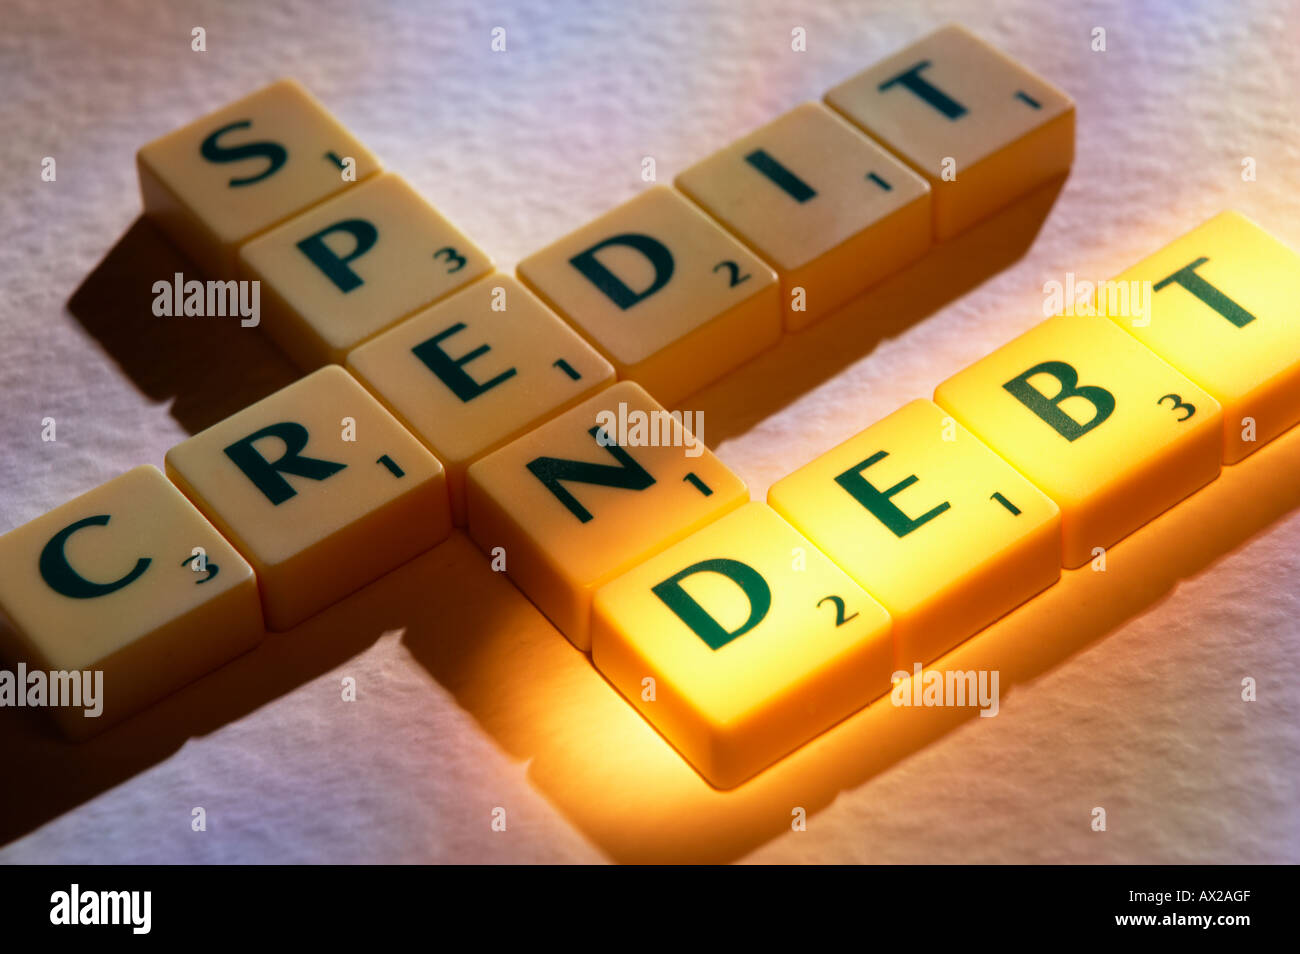 SCRABBLE BOARD GAME LETTERS SPELLING CREDIT SPEND DEBT - Stock Image